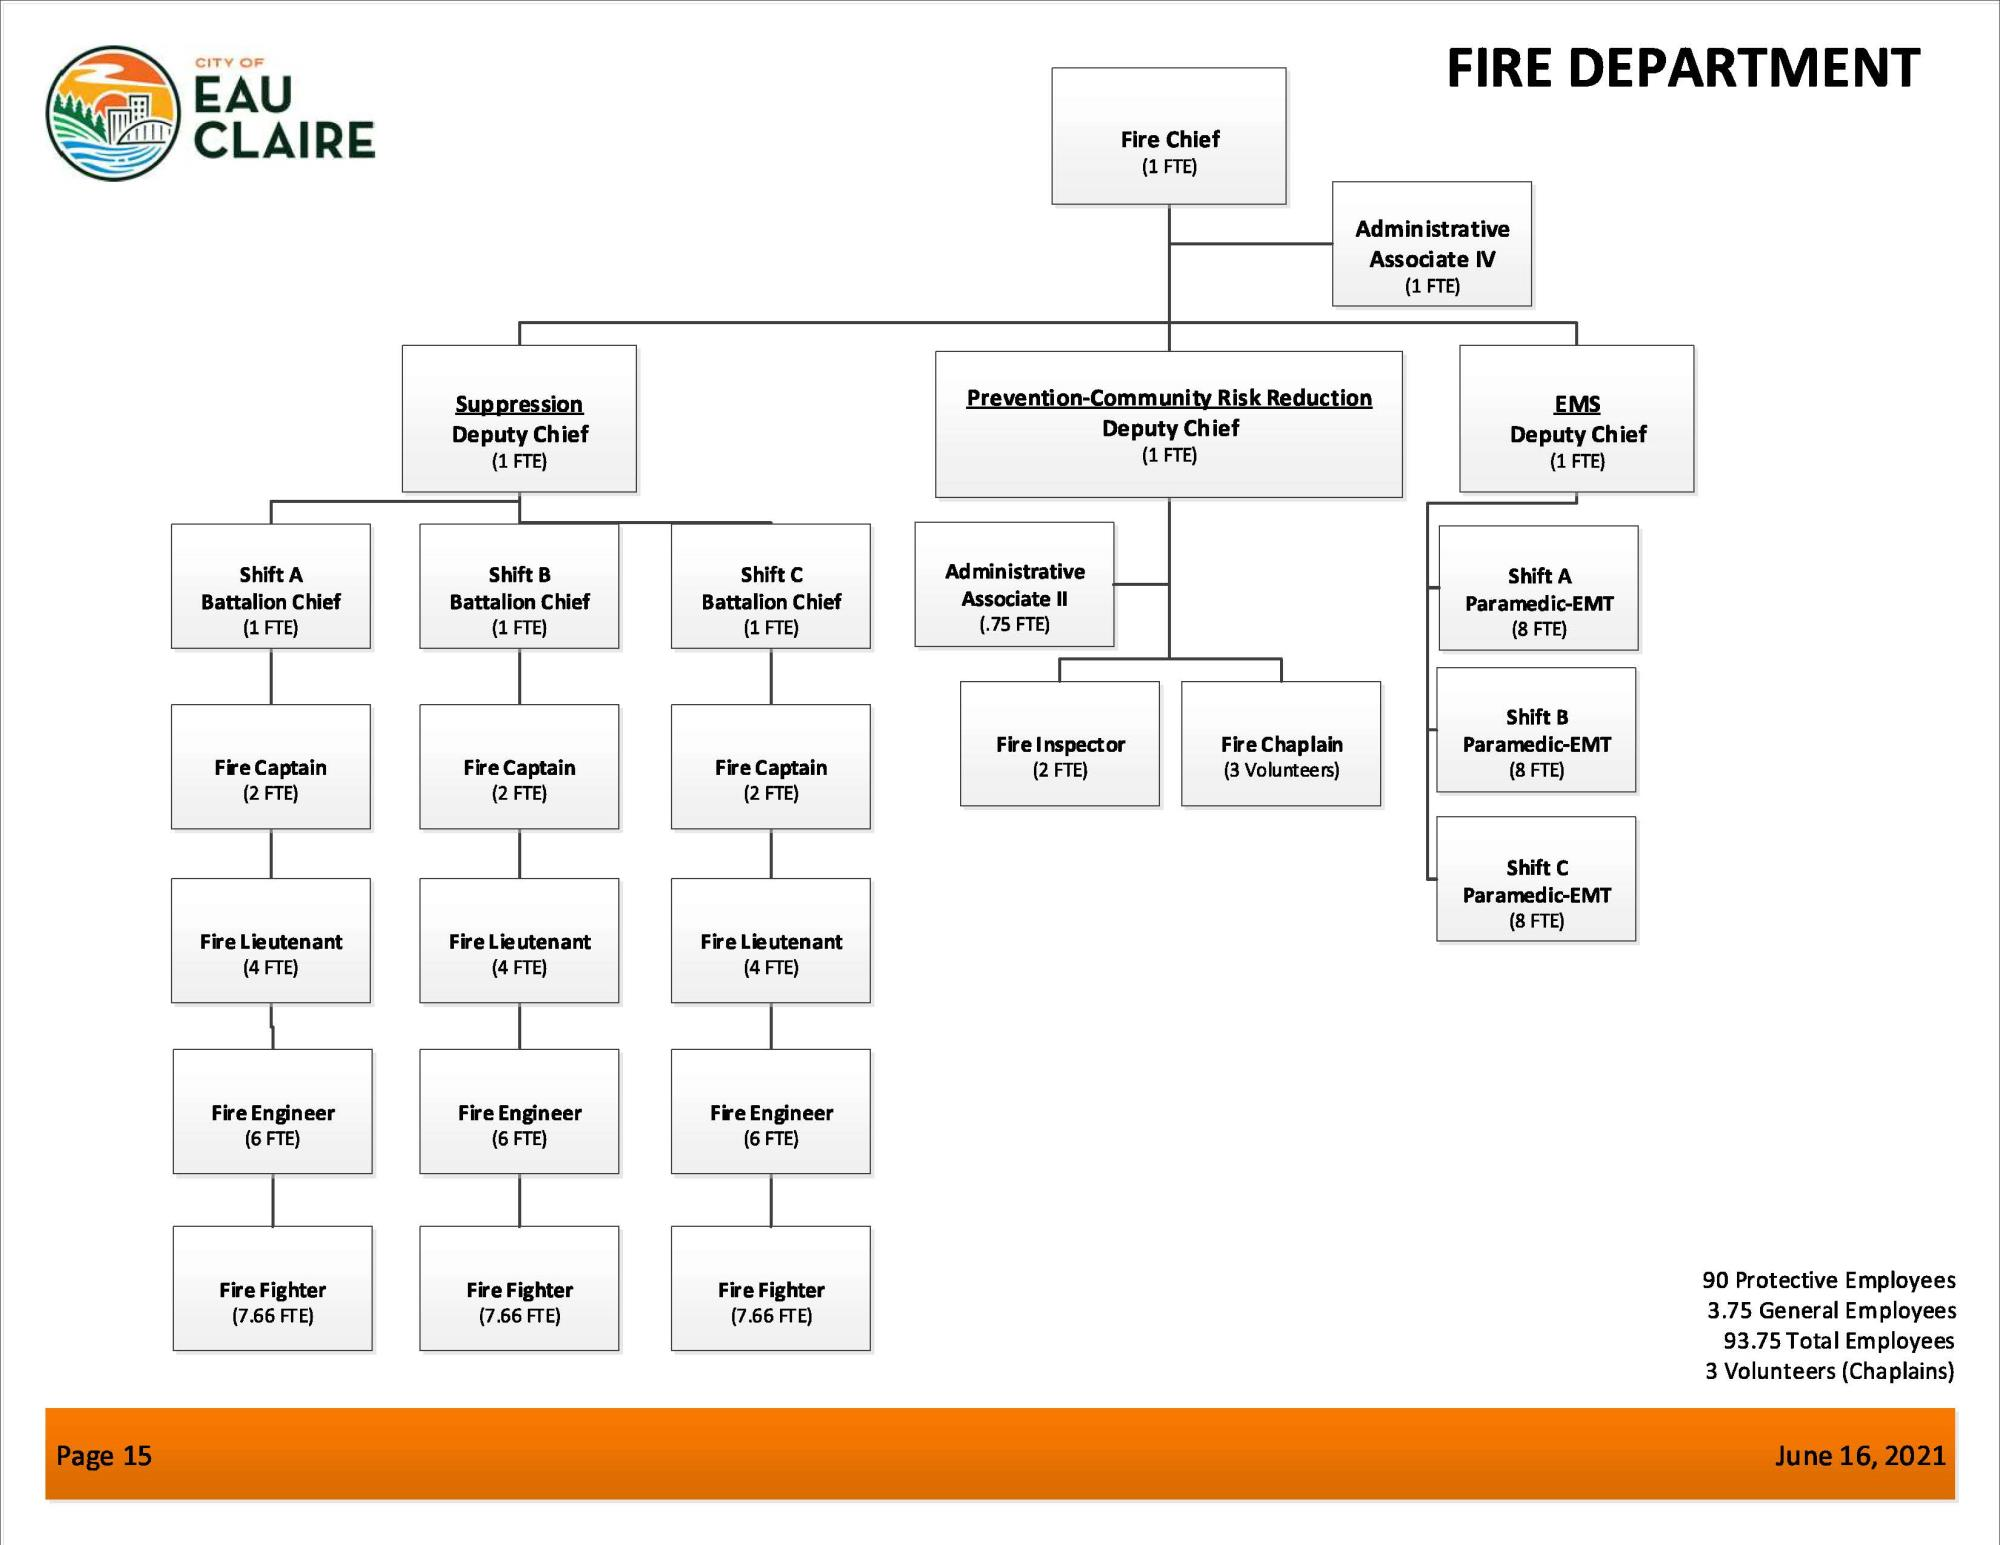 Organizational Chart  City Of Eau Claire Wisconsin